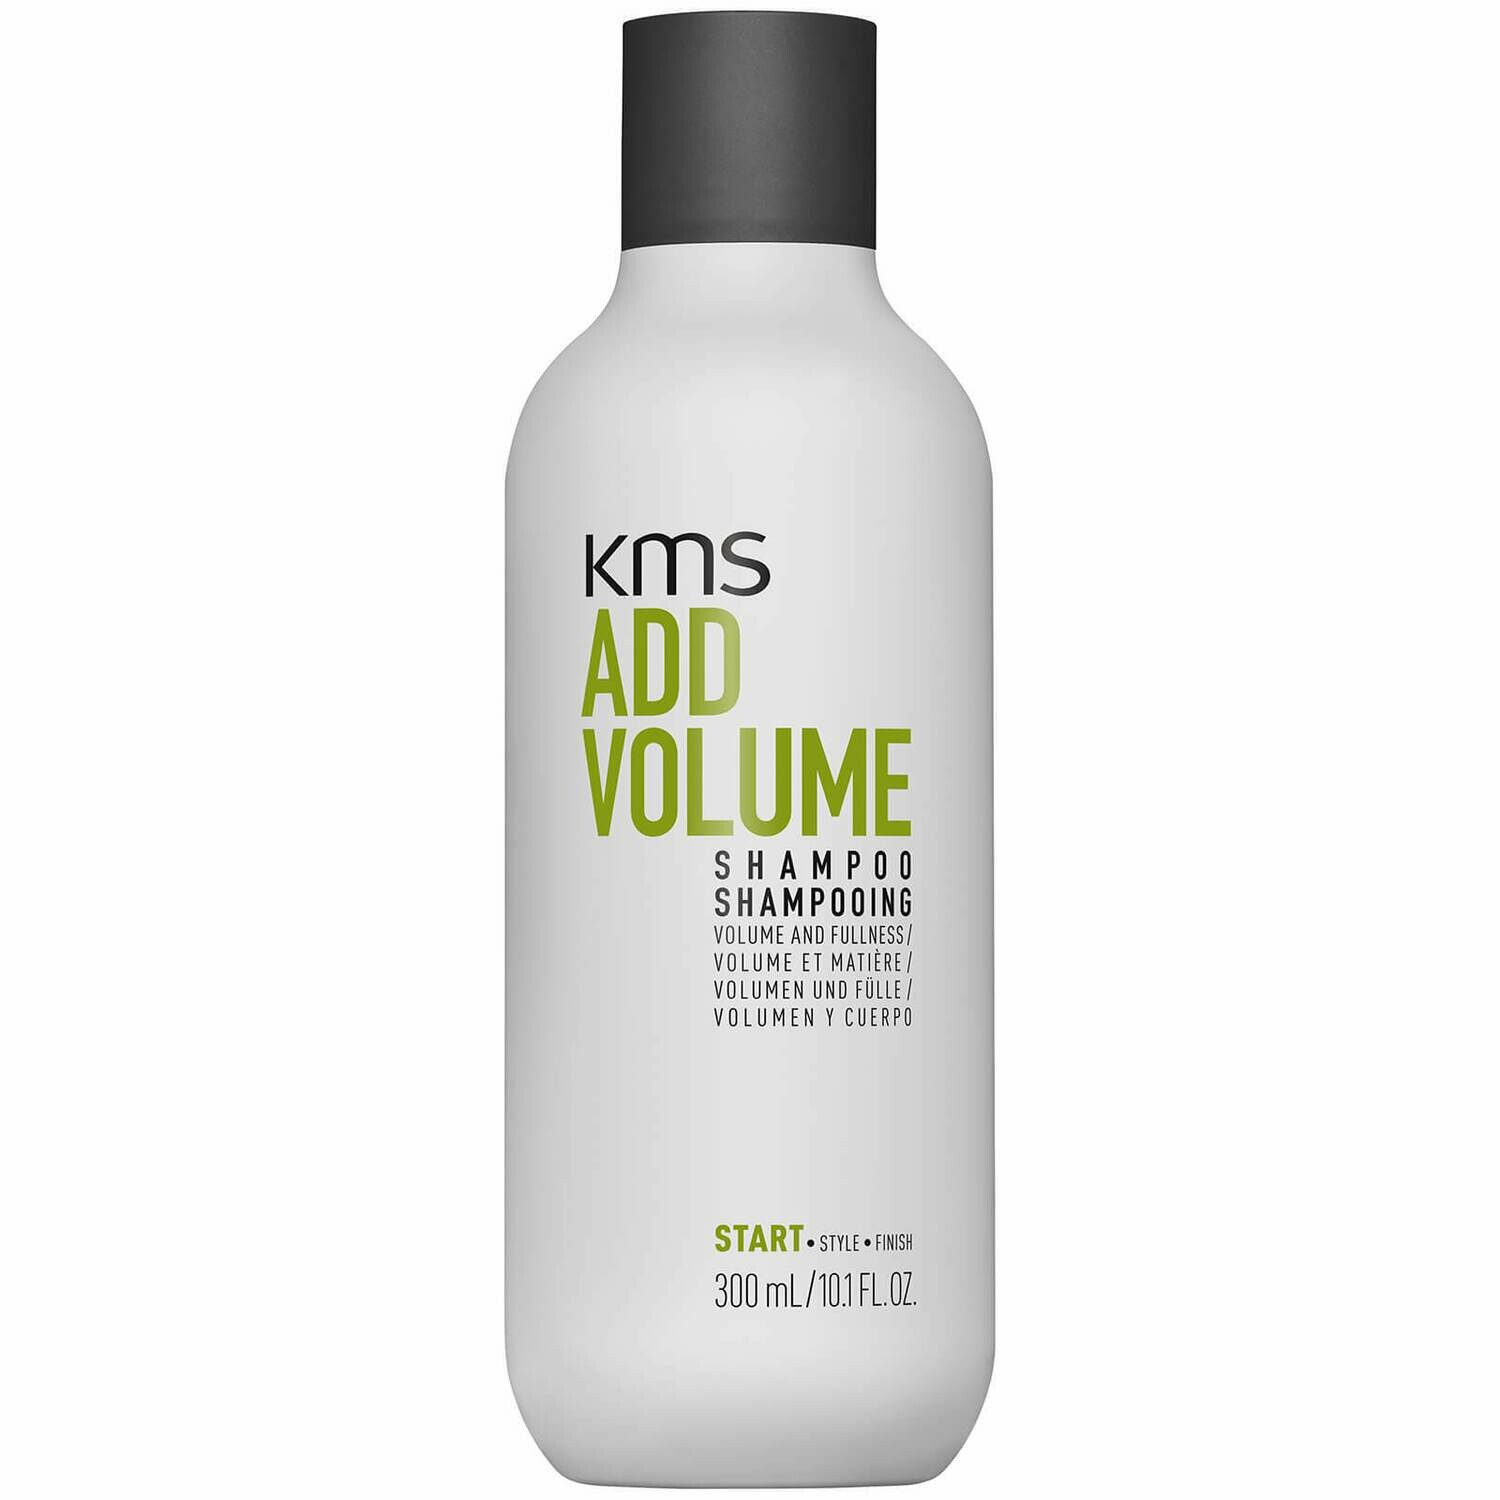 Add Volume Shampoo 300ml